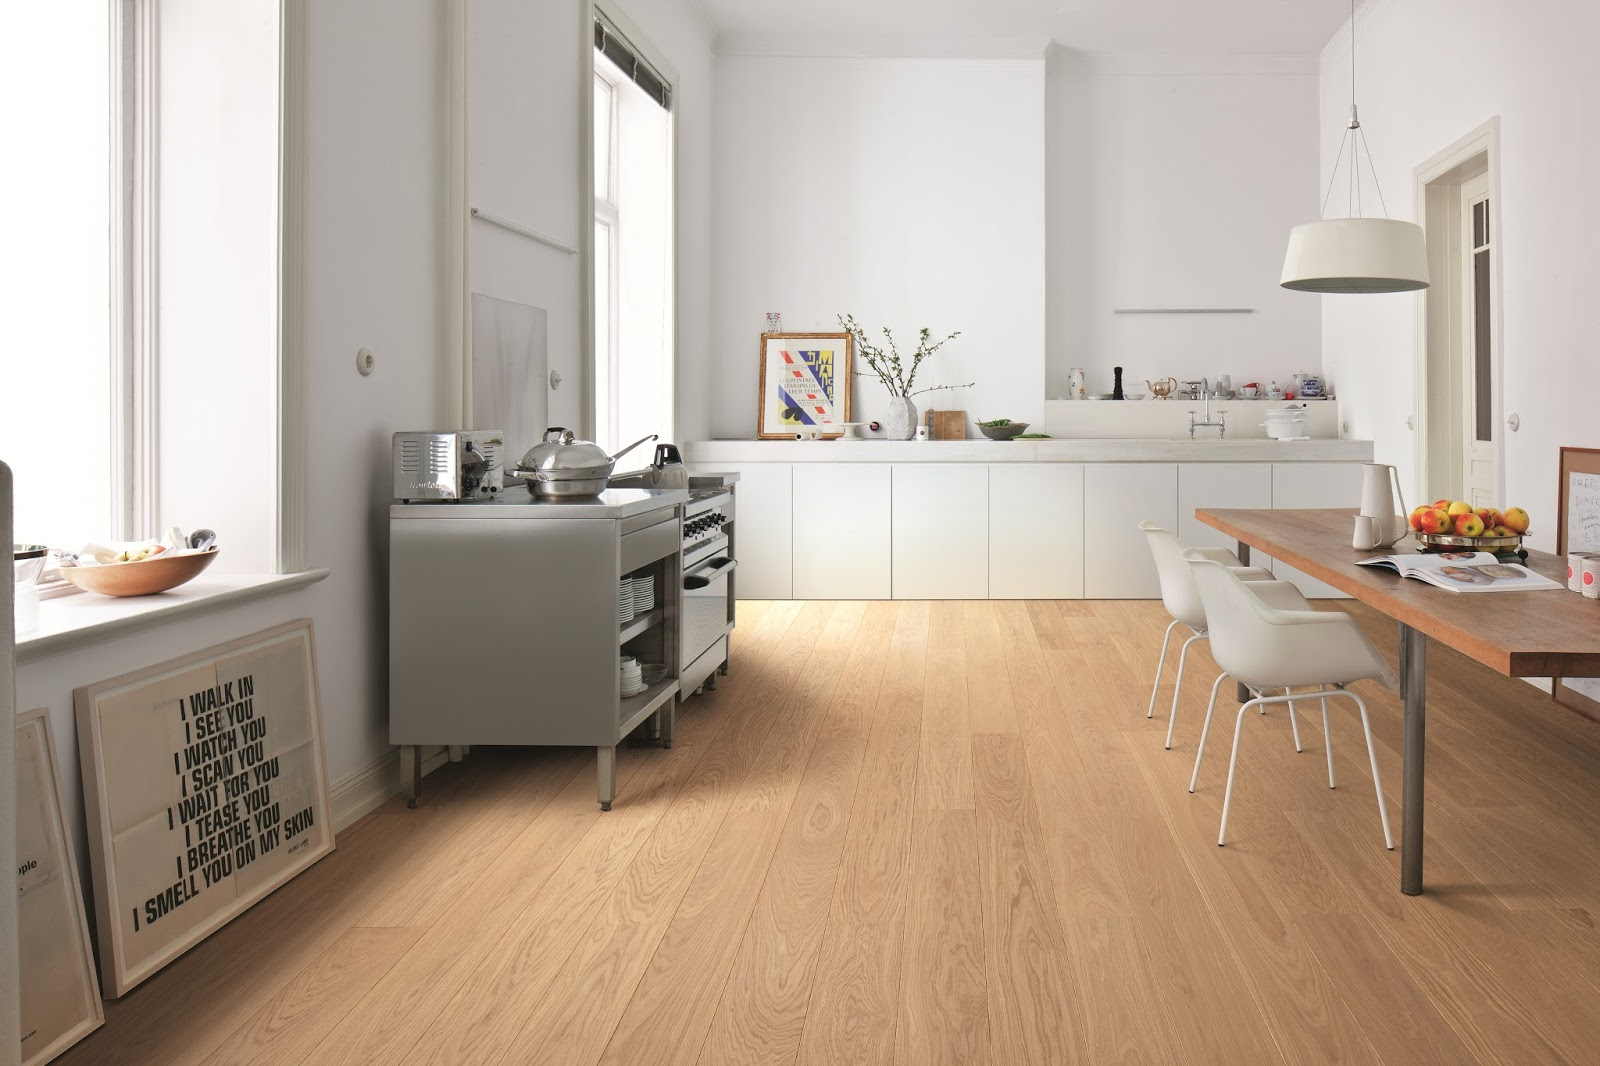 How to choose the pattern for your wood floor?